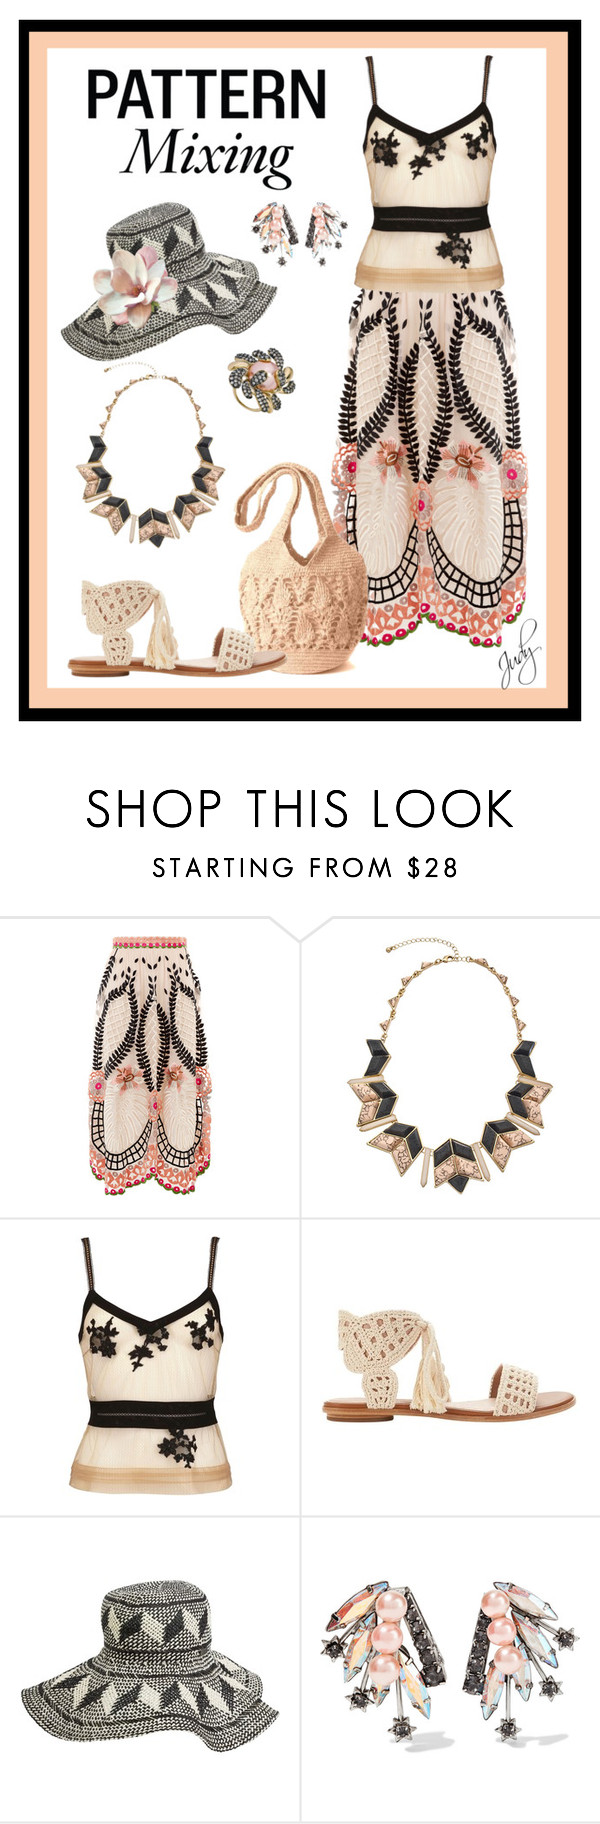 """""""Crochet: Patterns in Textures"""" by judymjohnson ❤ liked on Polyvore featuring Temperley London, Blu Bijoux, La Perla, Joie, Quiksilver, Elizabeth Cole and Andara"""